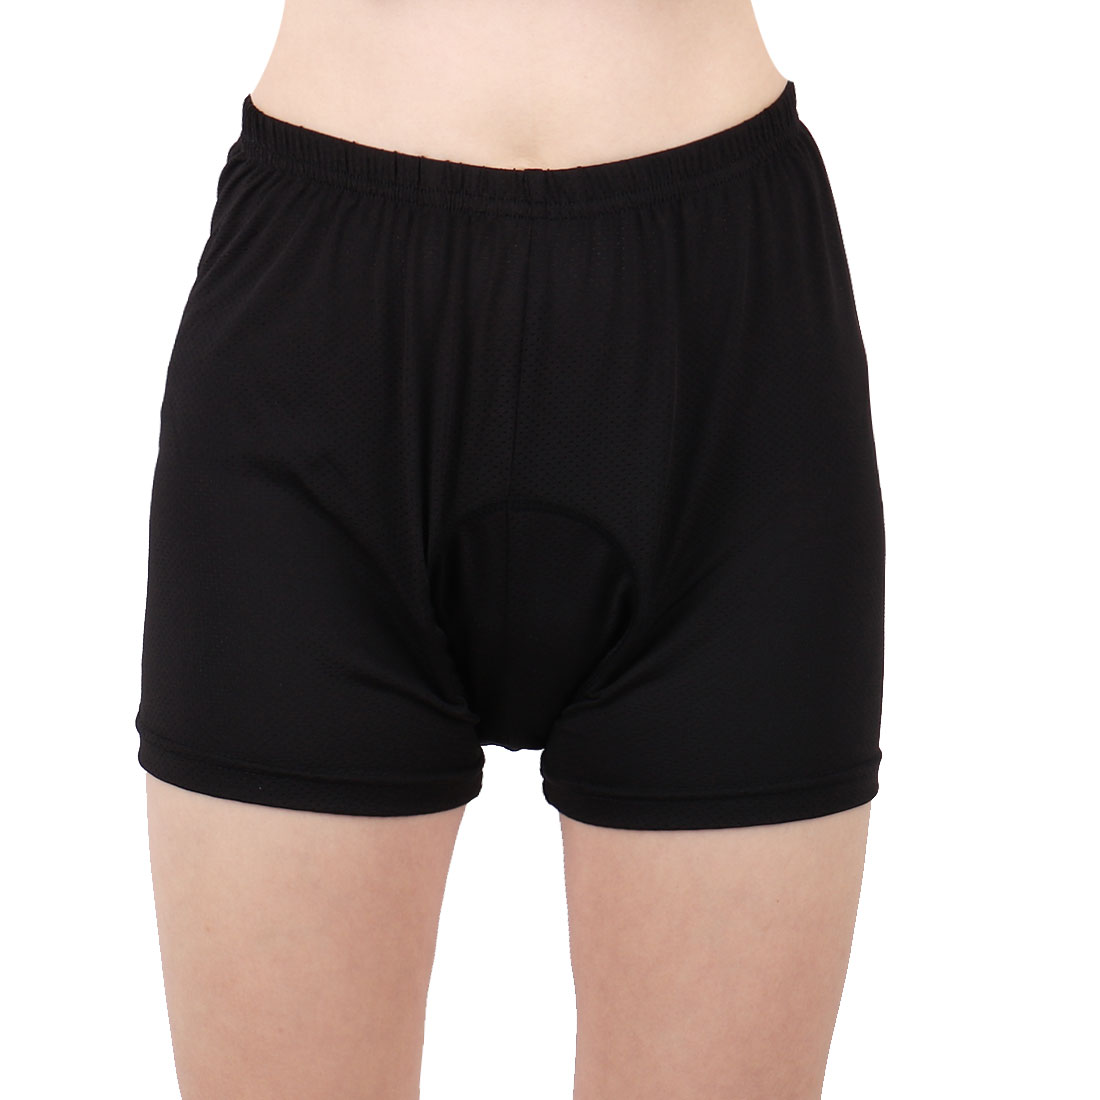 Motorcycle Bicycle Sports Underwear 3D Padded Elastic Underpants Cycling Shorts US 2